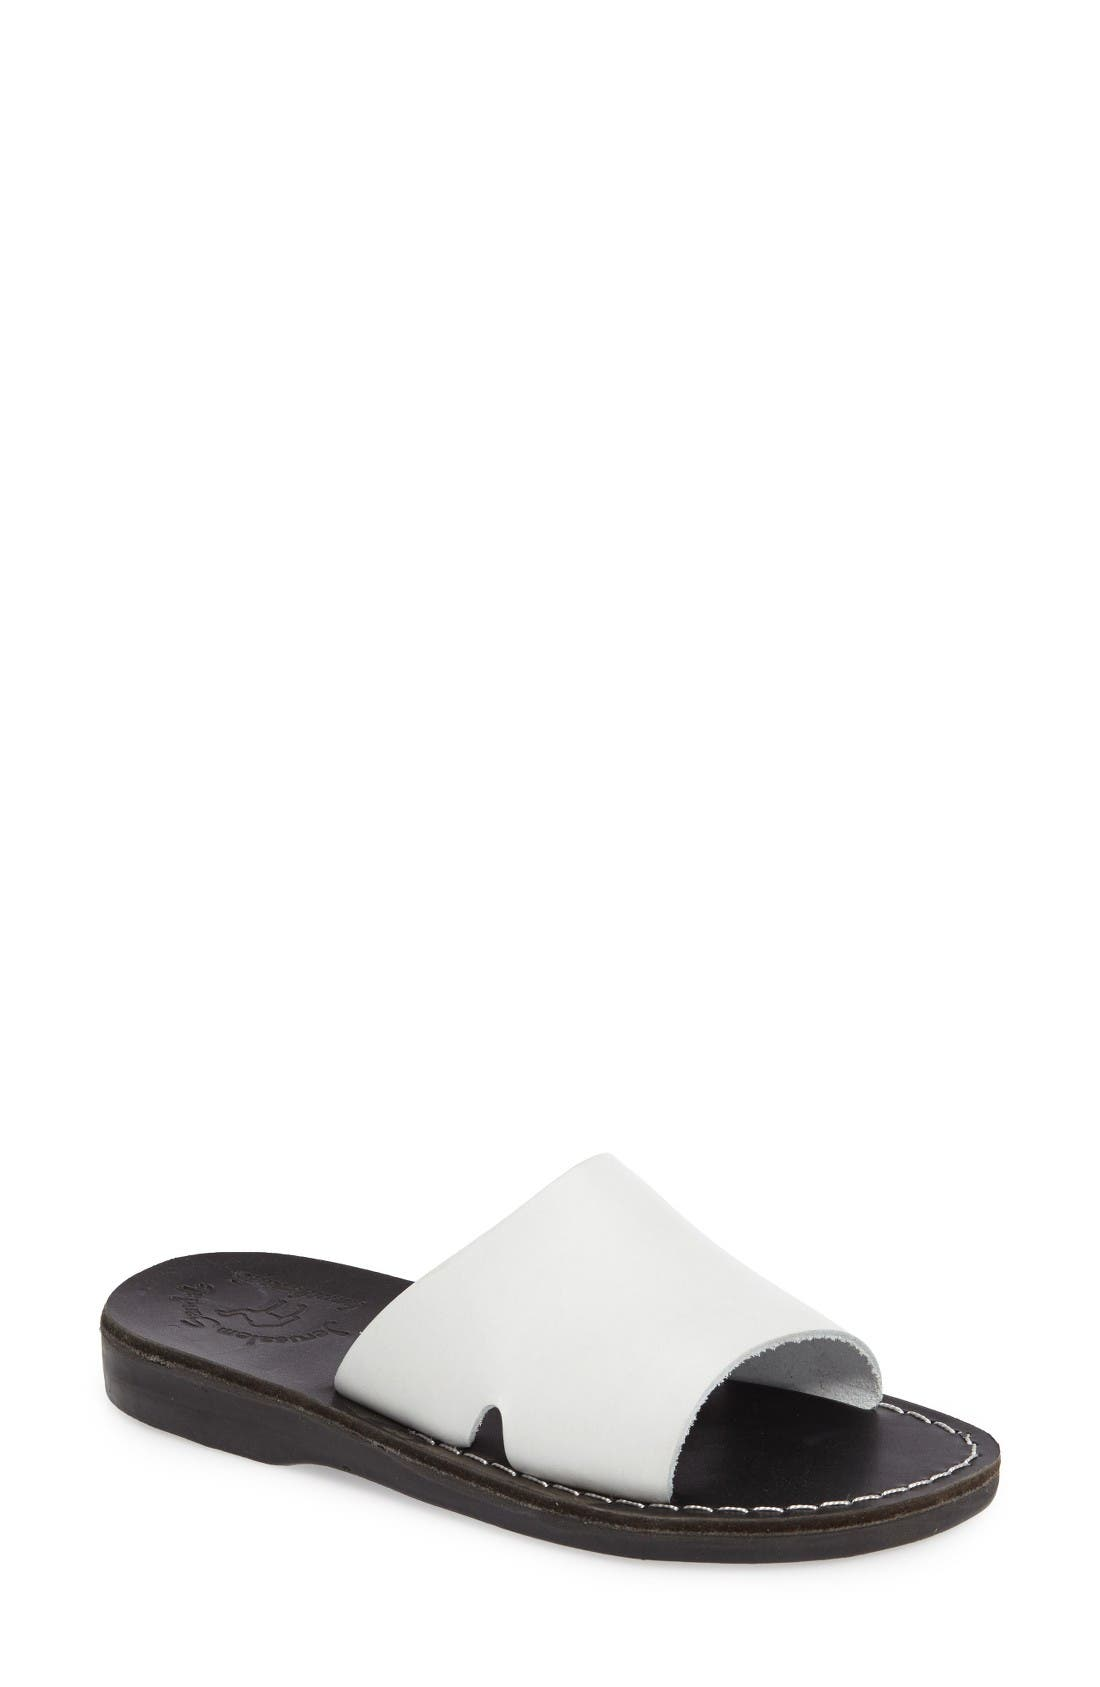 Bashan Open Toe Slide,                             Main thumbnail 1, color,                             Black/ White Leather